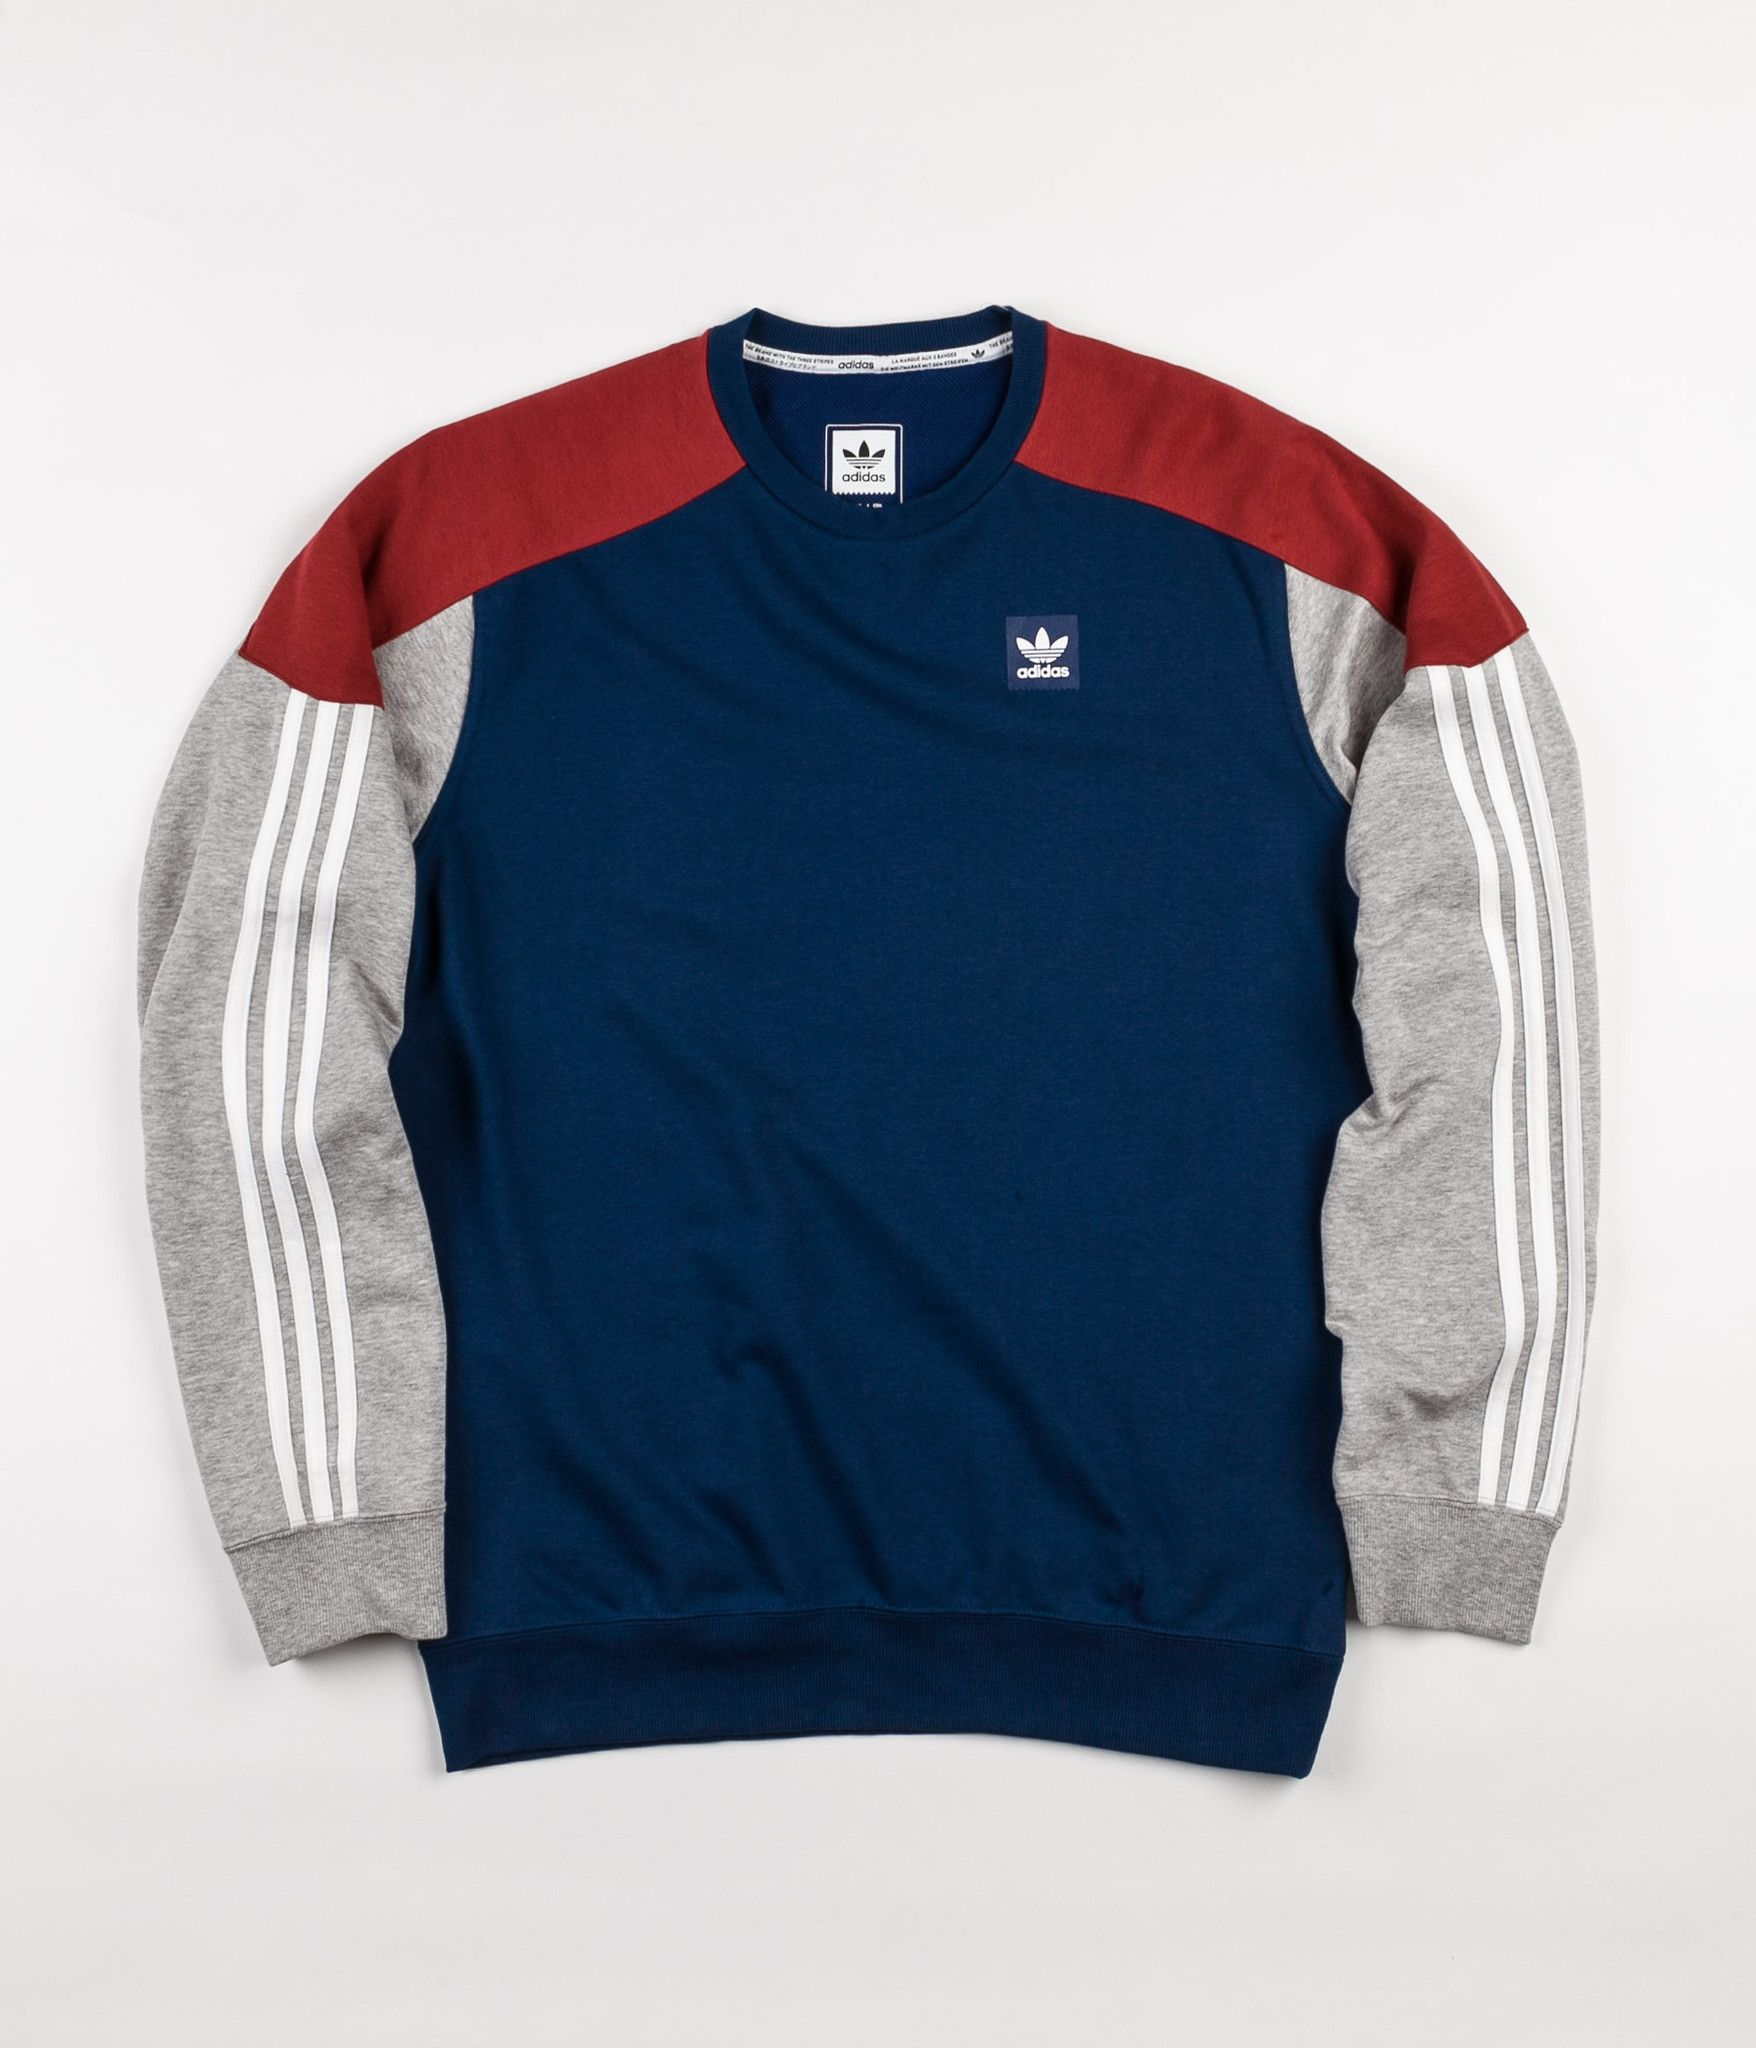 Adidas Climalite Nautical Crewneck Sweatshirt Mystery Red